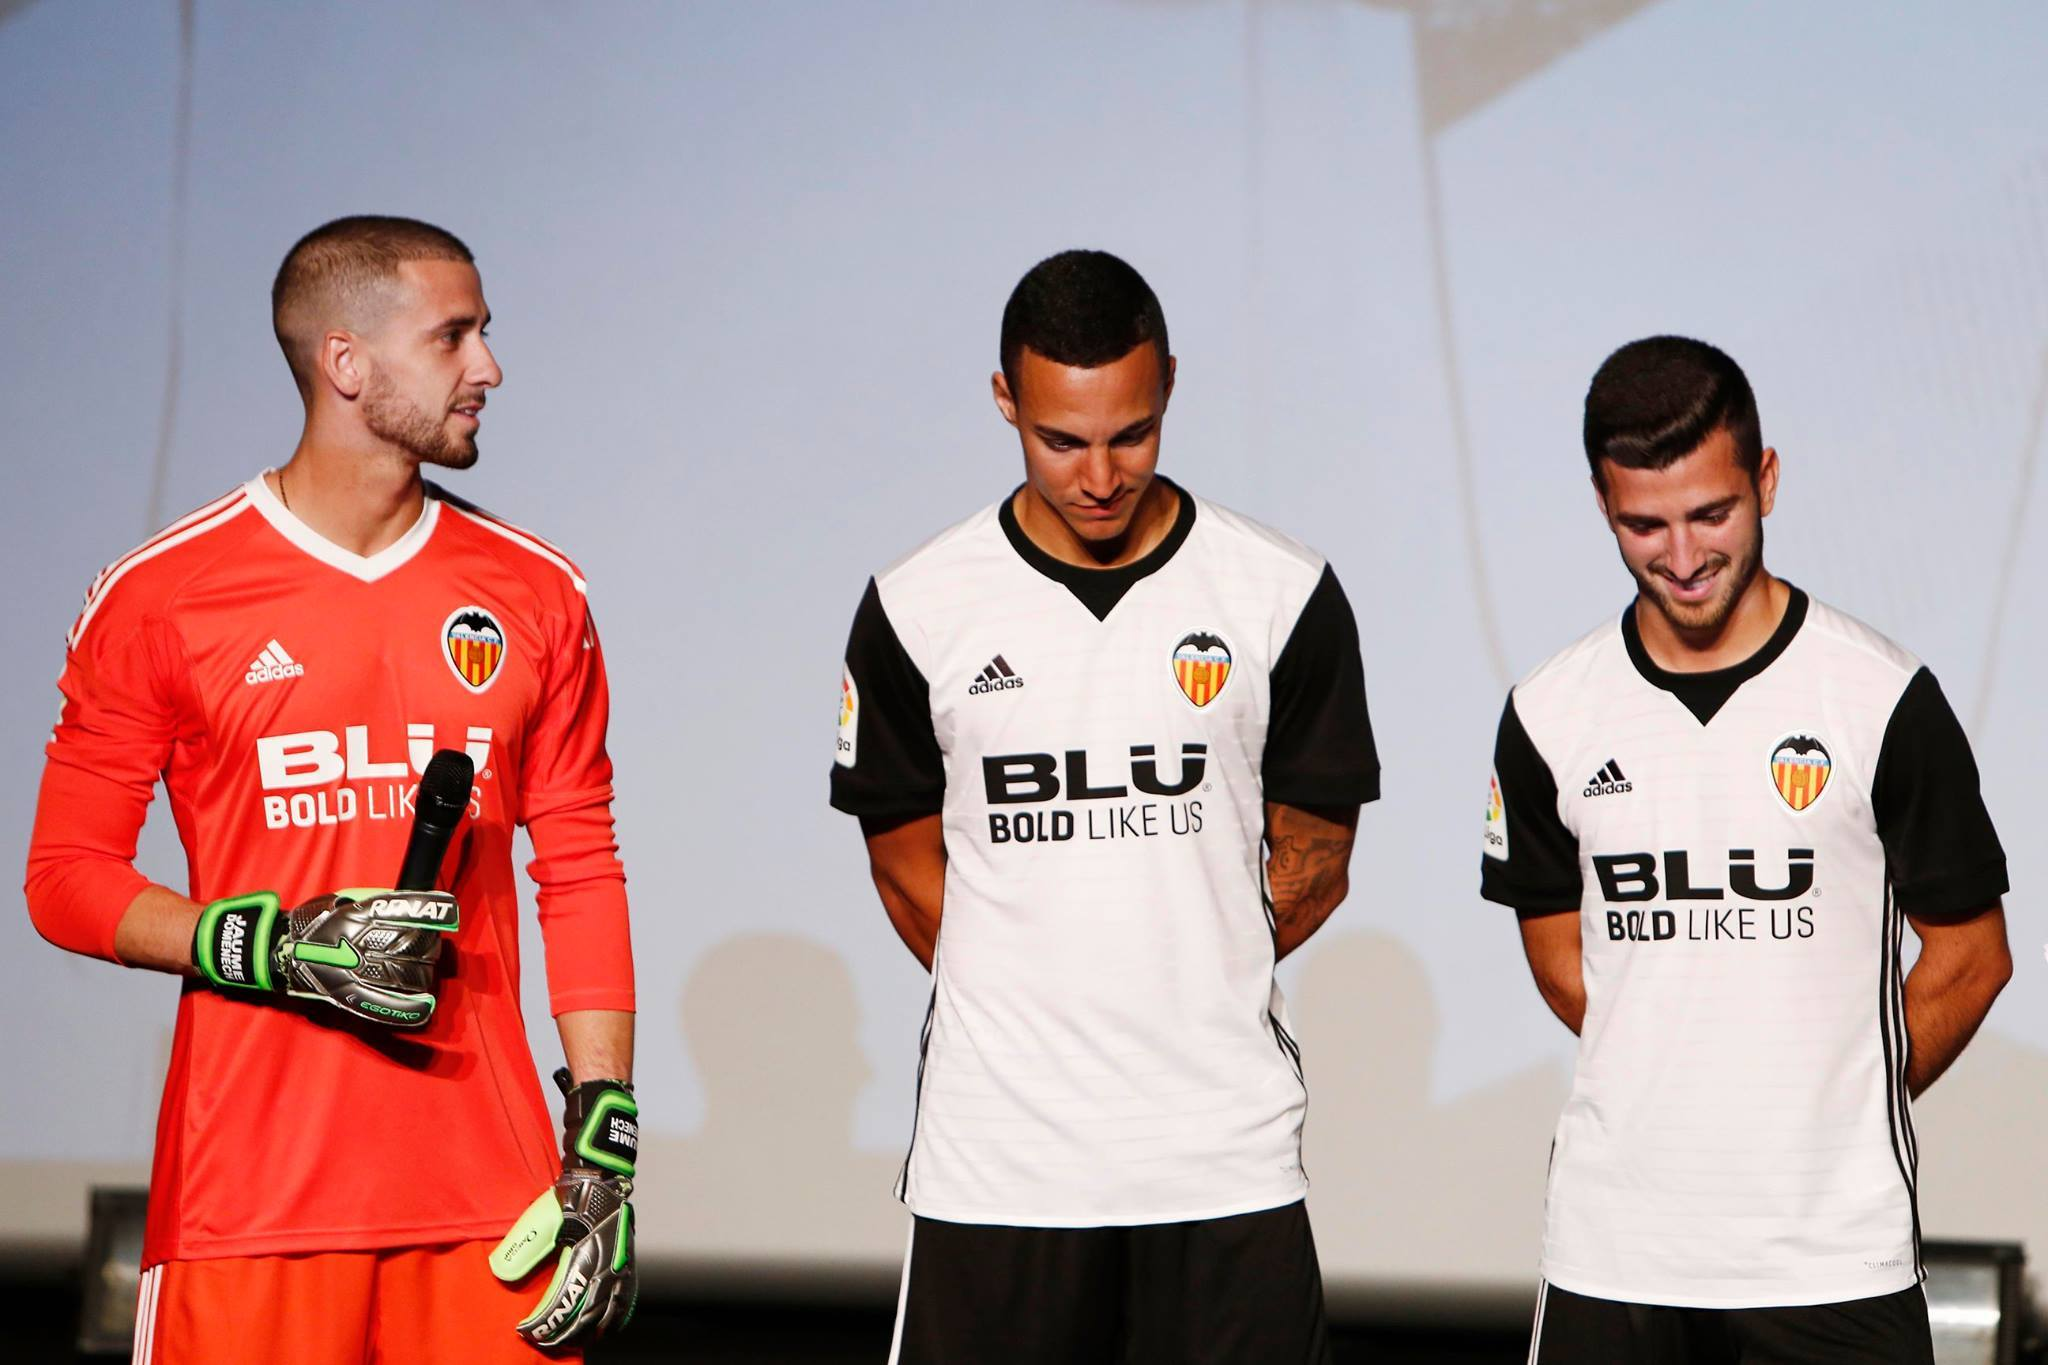 d65b70b0fbc ... of our kits throughout history, and there are also other details which  lend added value such as the Club's name, Valencia CF, on the back of the  collar.